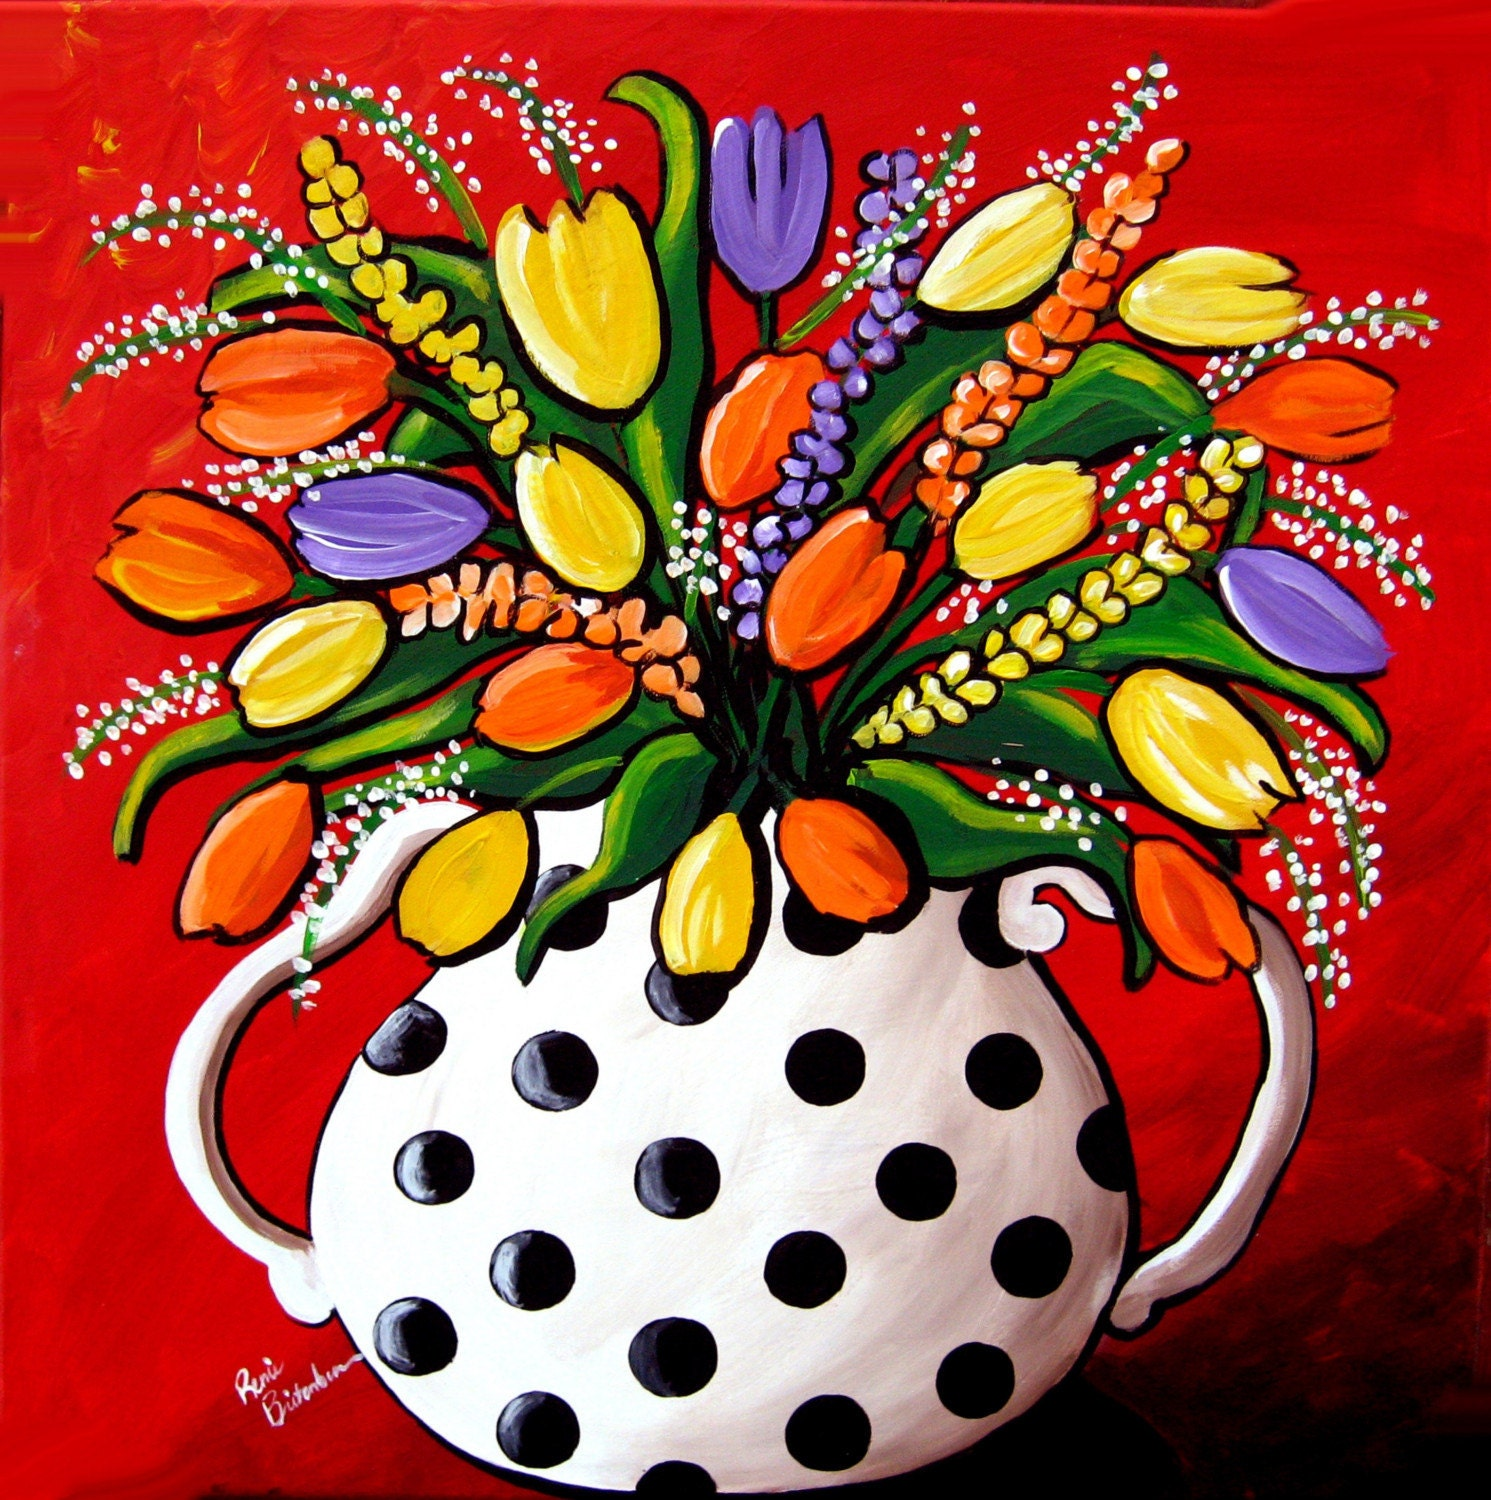 Colorful Art: Tulips And Spring Flowers Whimsical Colorful Folk Art Giclee